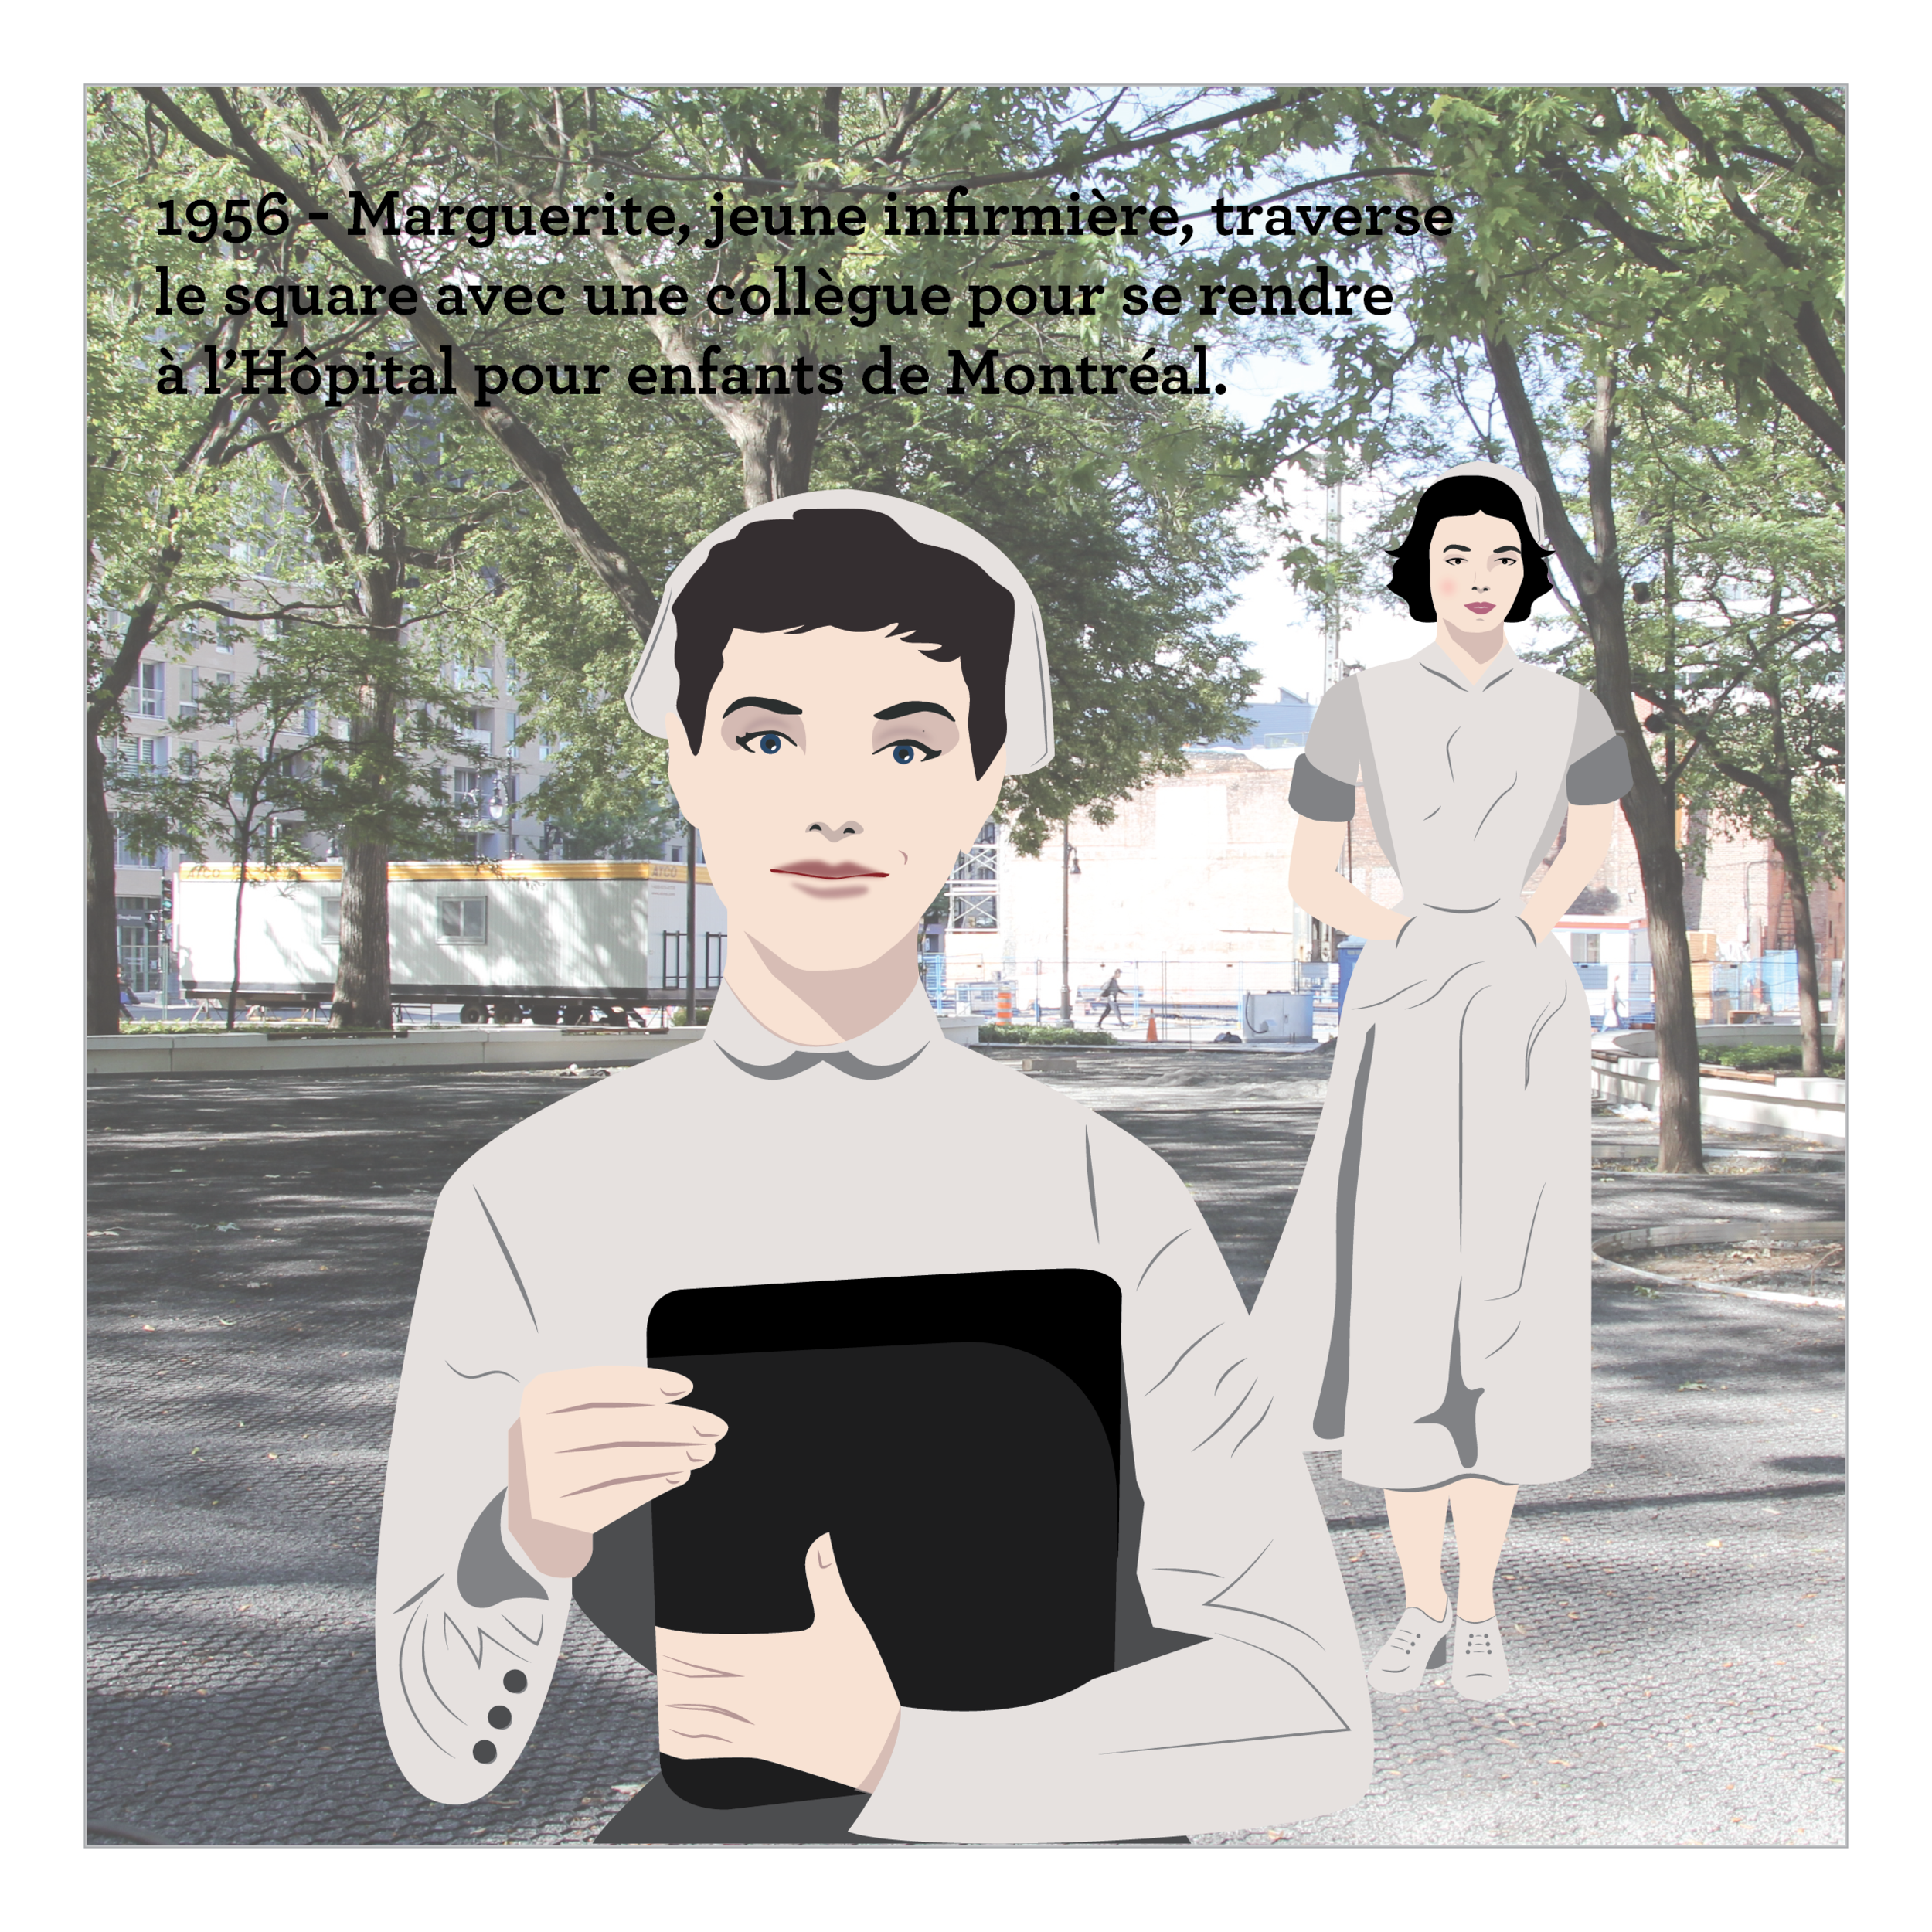 Cabot-defileStoryboardVueVisionneuse-030715-05.png